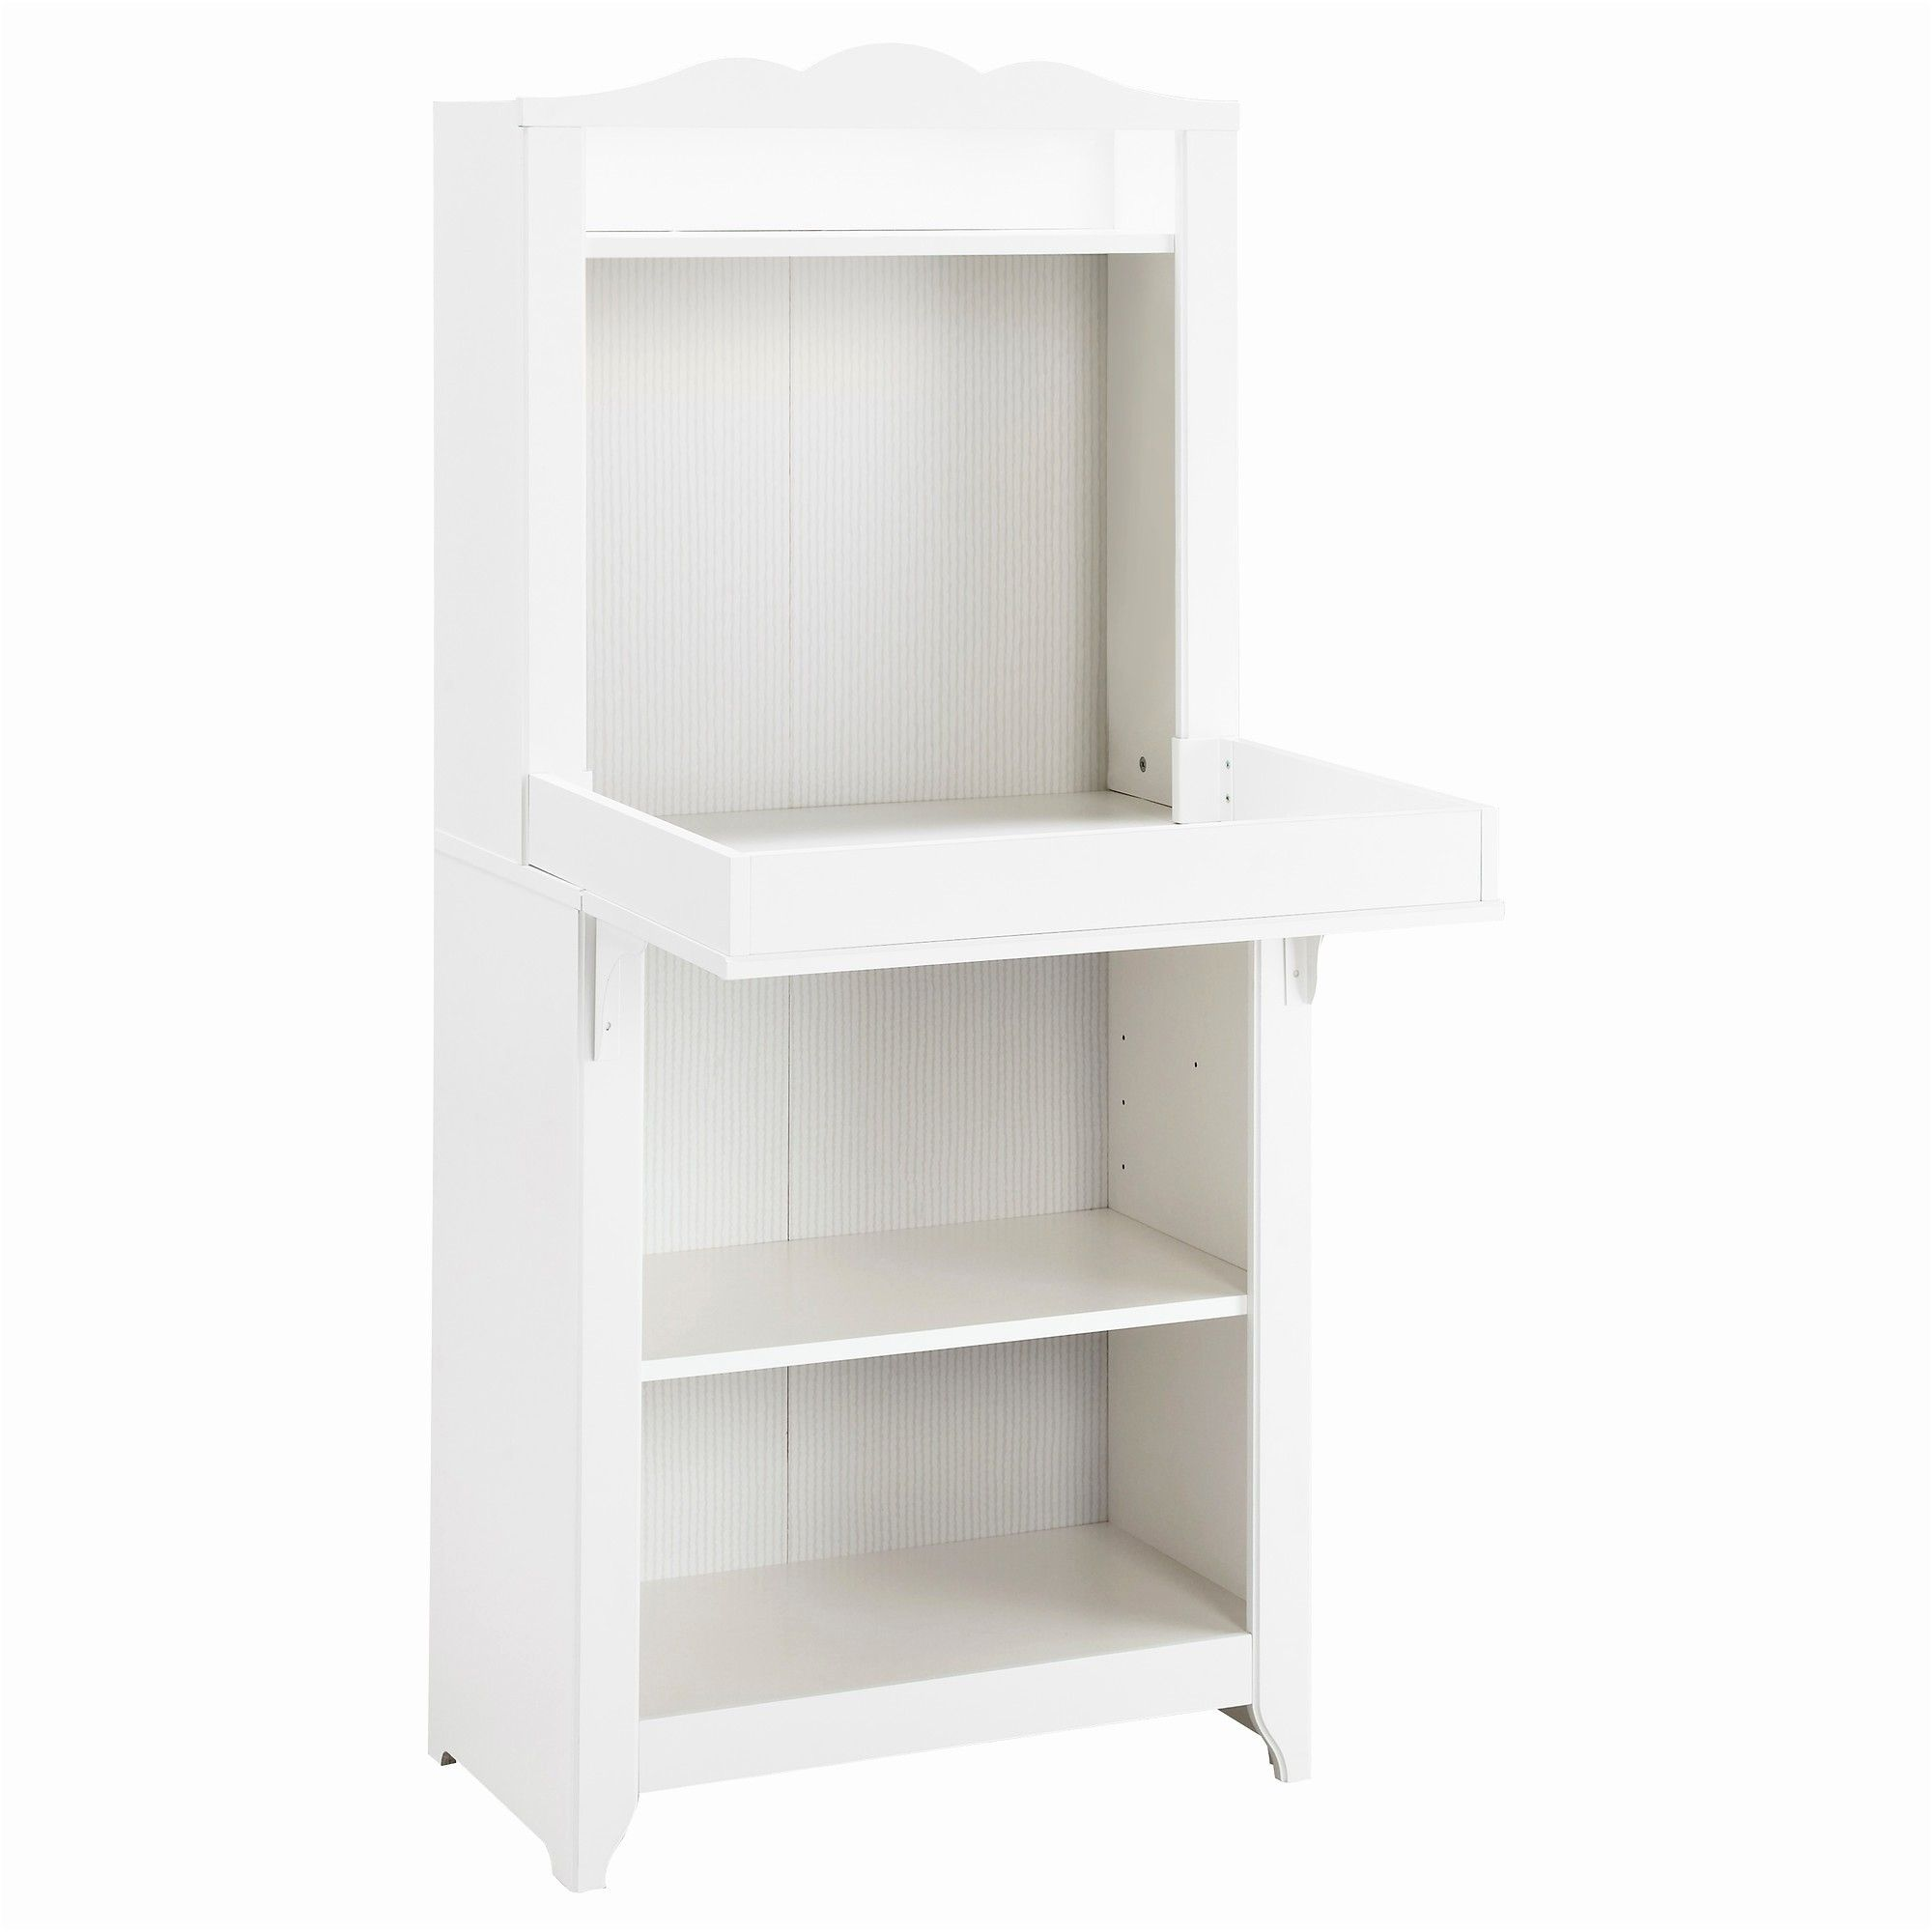 Pont De Baignoire Ikea Pont De Baignoire Ikea Niches Pour Shampoings Dans Douche Et Baignoire 10 Mes Baby Changing Tables Ikea Hensvik Ikea Childrens Bedroom